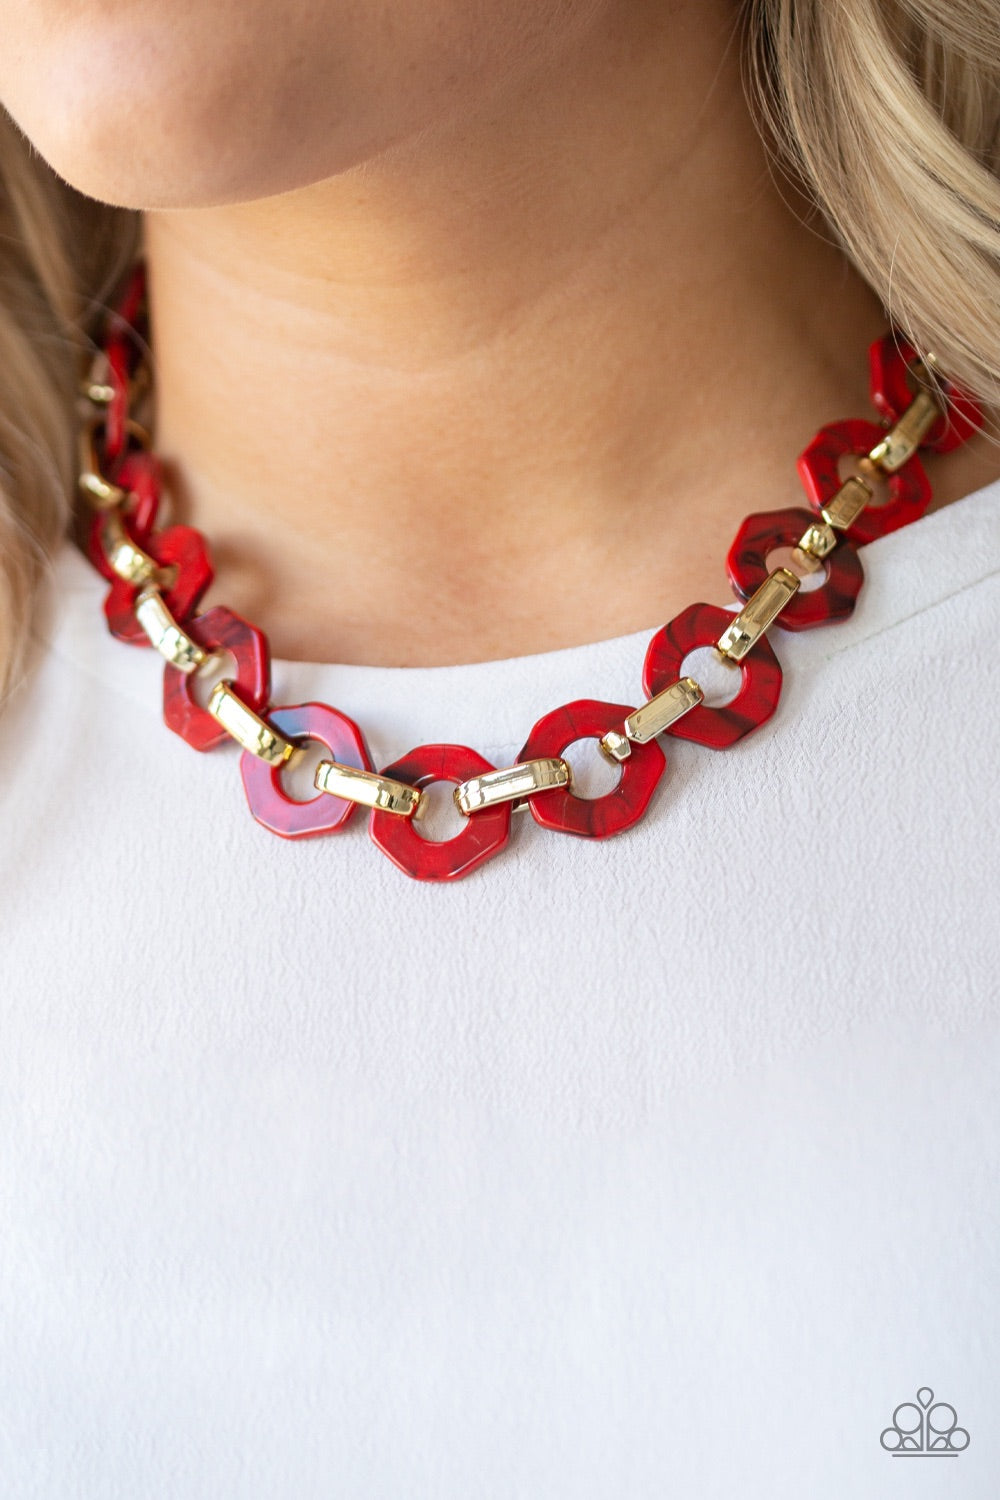 Paparazzi Jewelry Necklace Fashionista Fever - Red